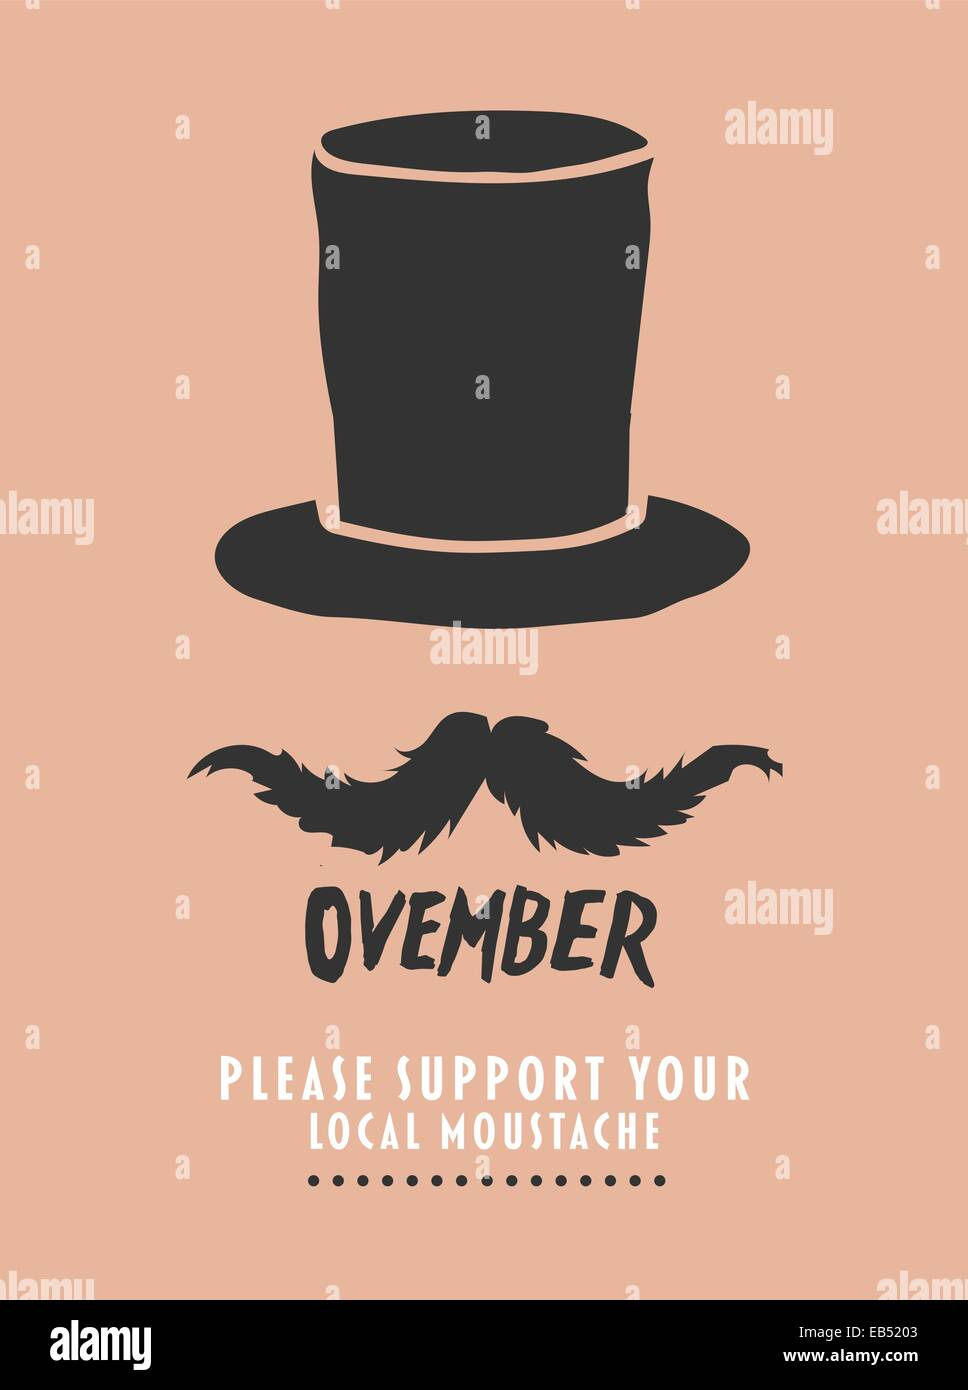 Movember advertisement vector with text and graphic - Stock Image